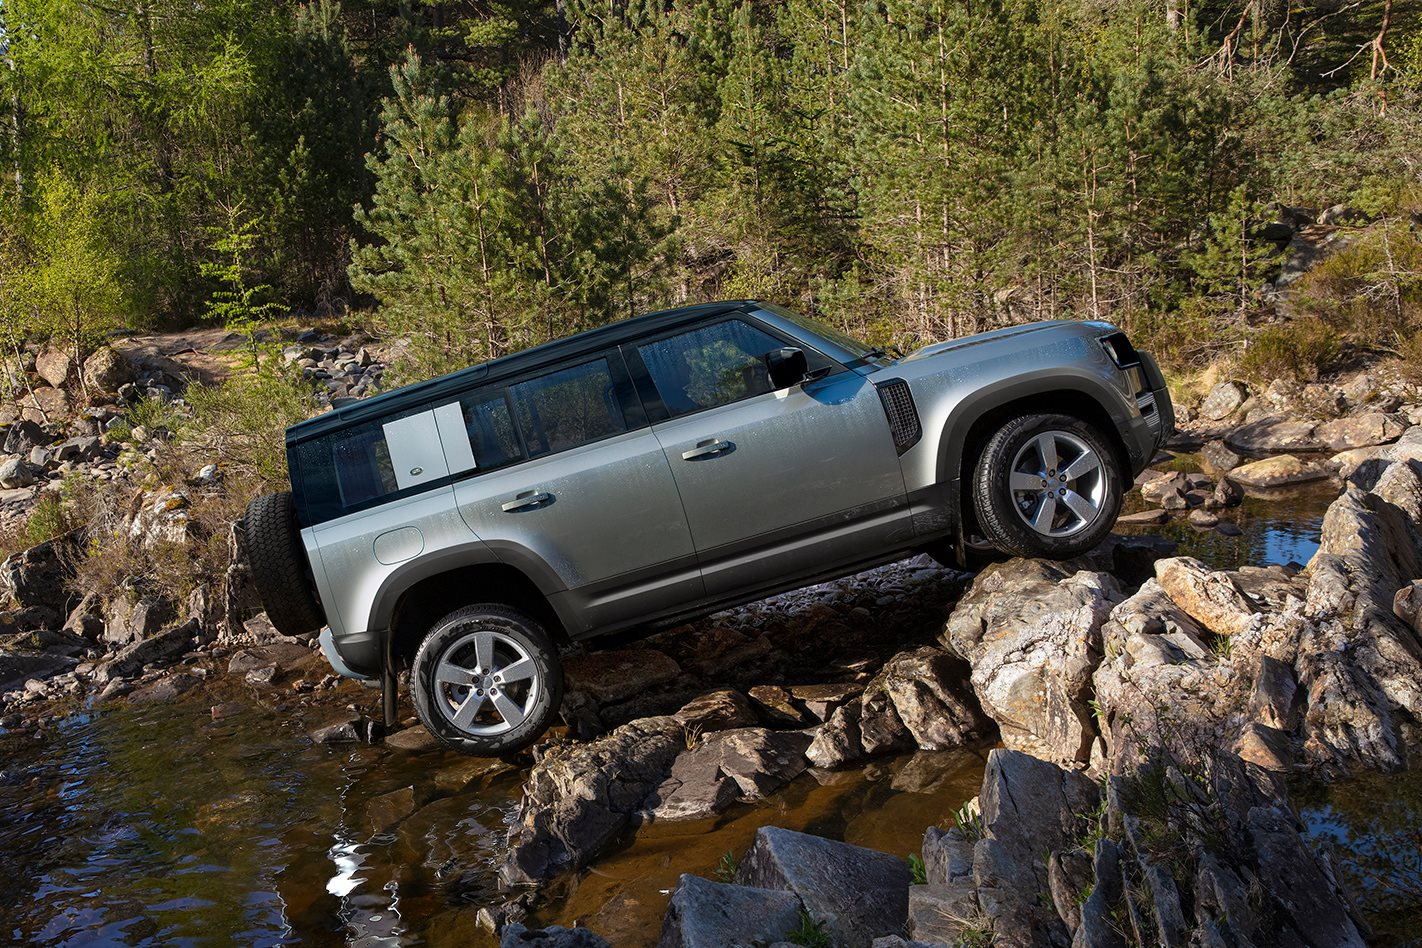 Here's how much the 2020 Land Rover Defender 110 will cost in Australia